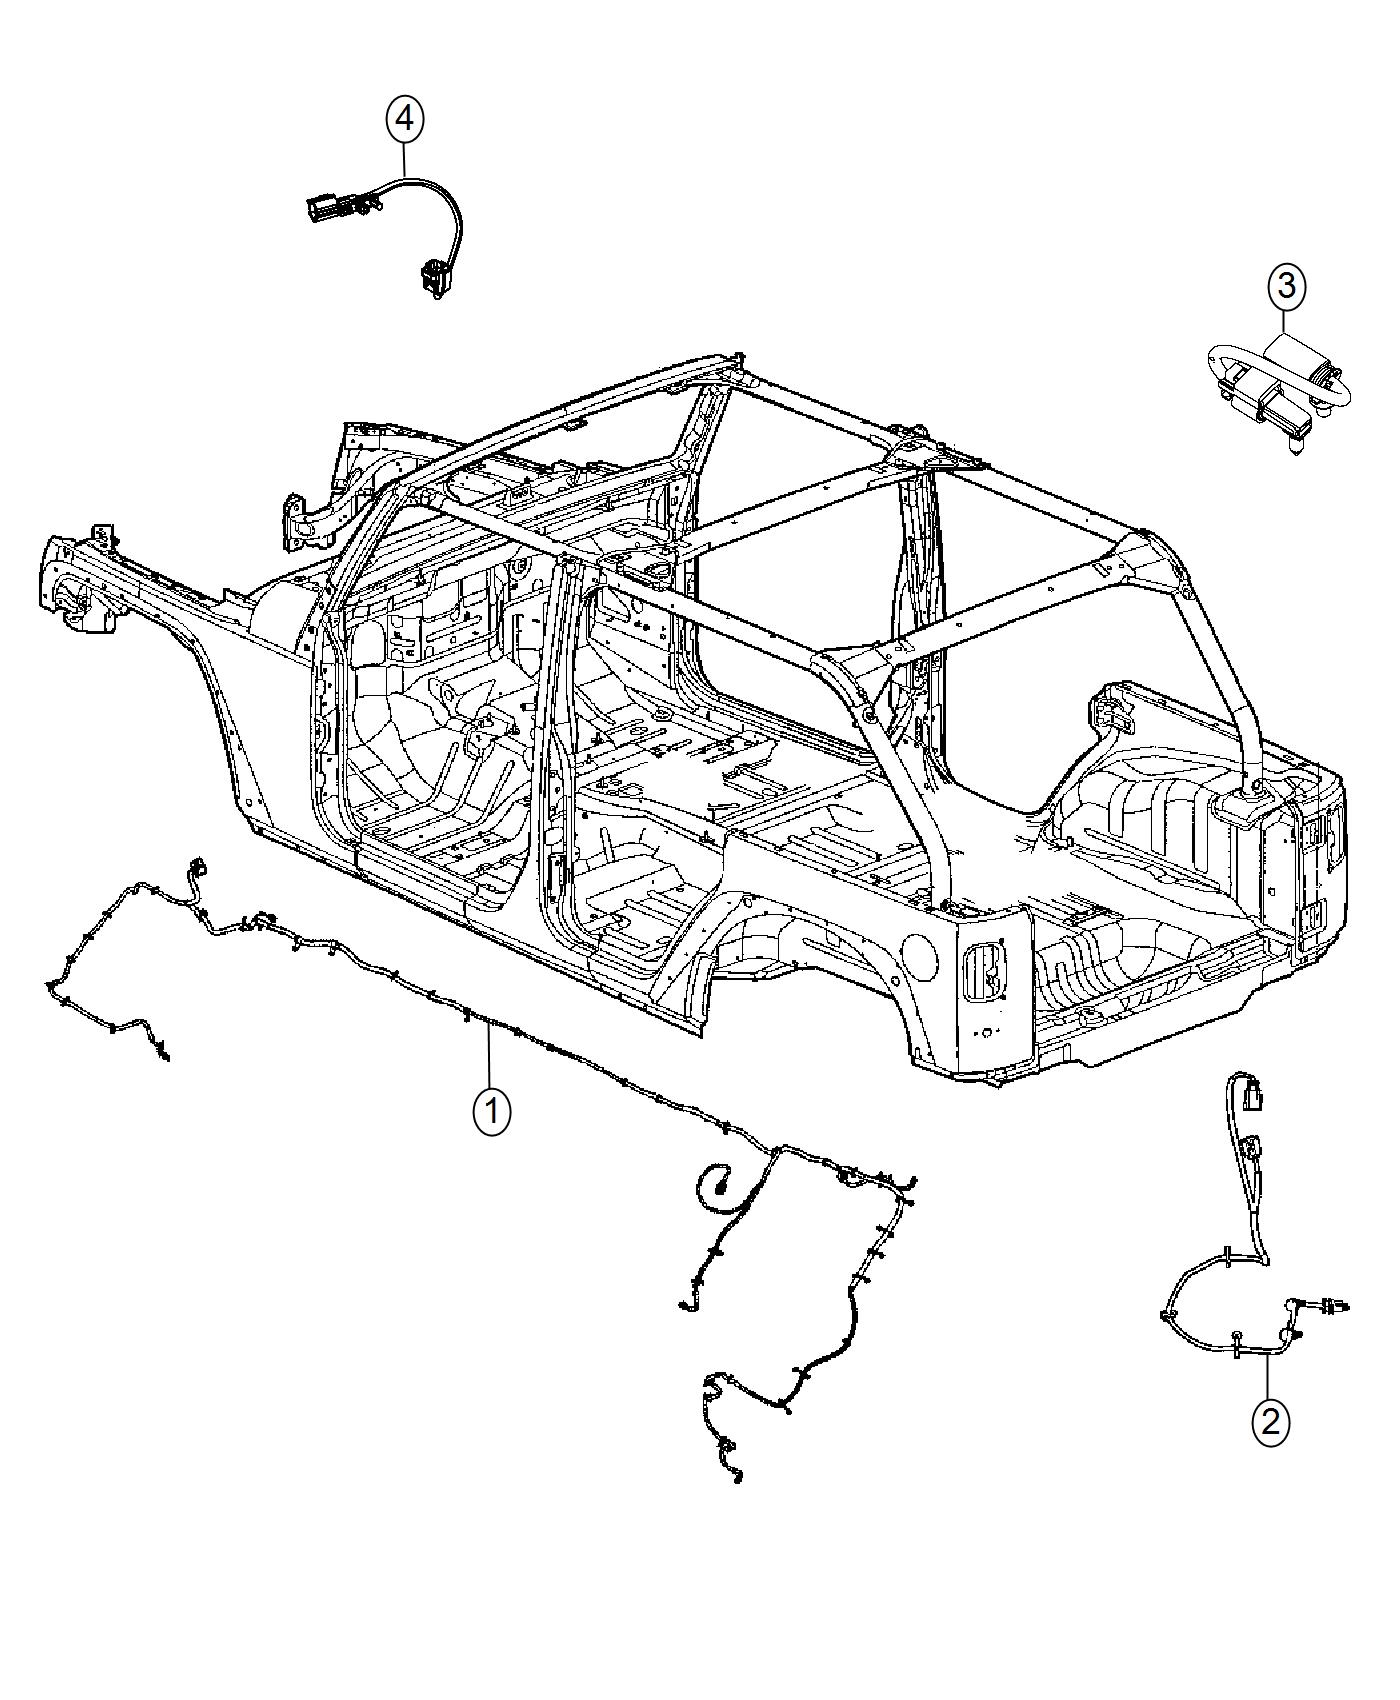 Jeep Wrangler Wiring. Chassis. Export. Rear, module